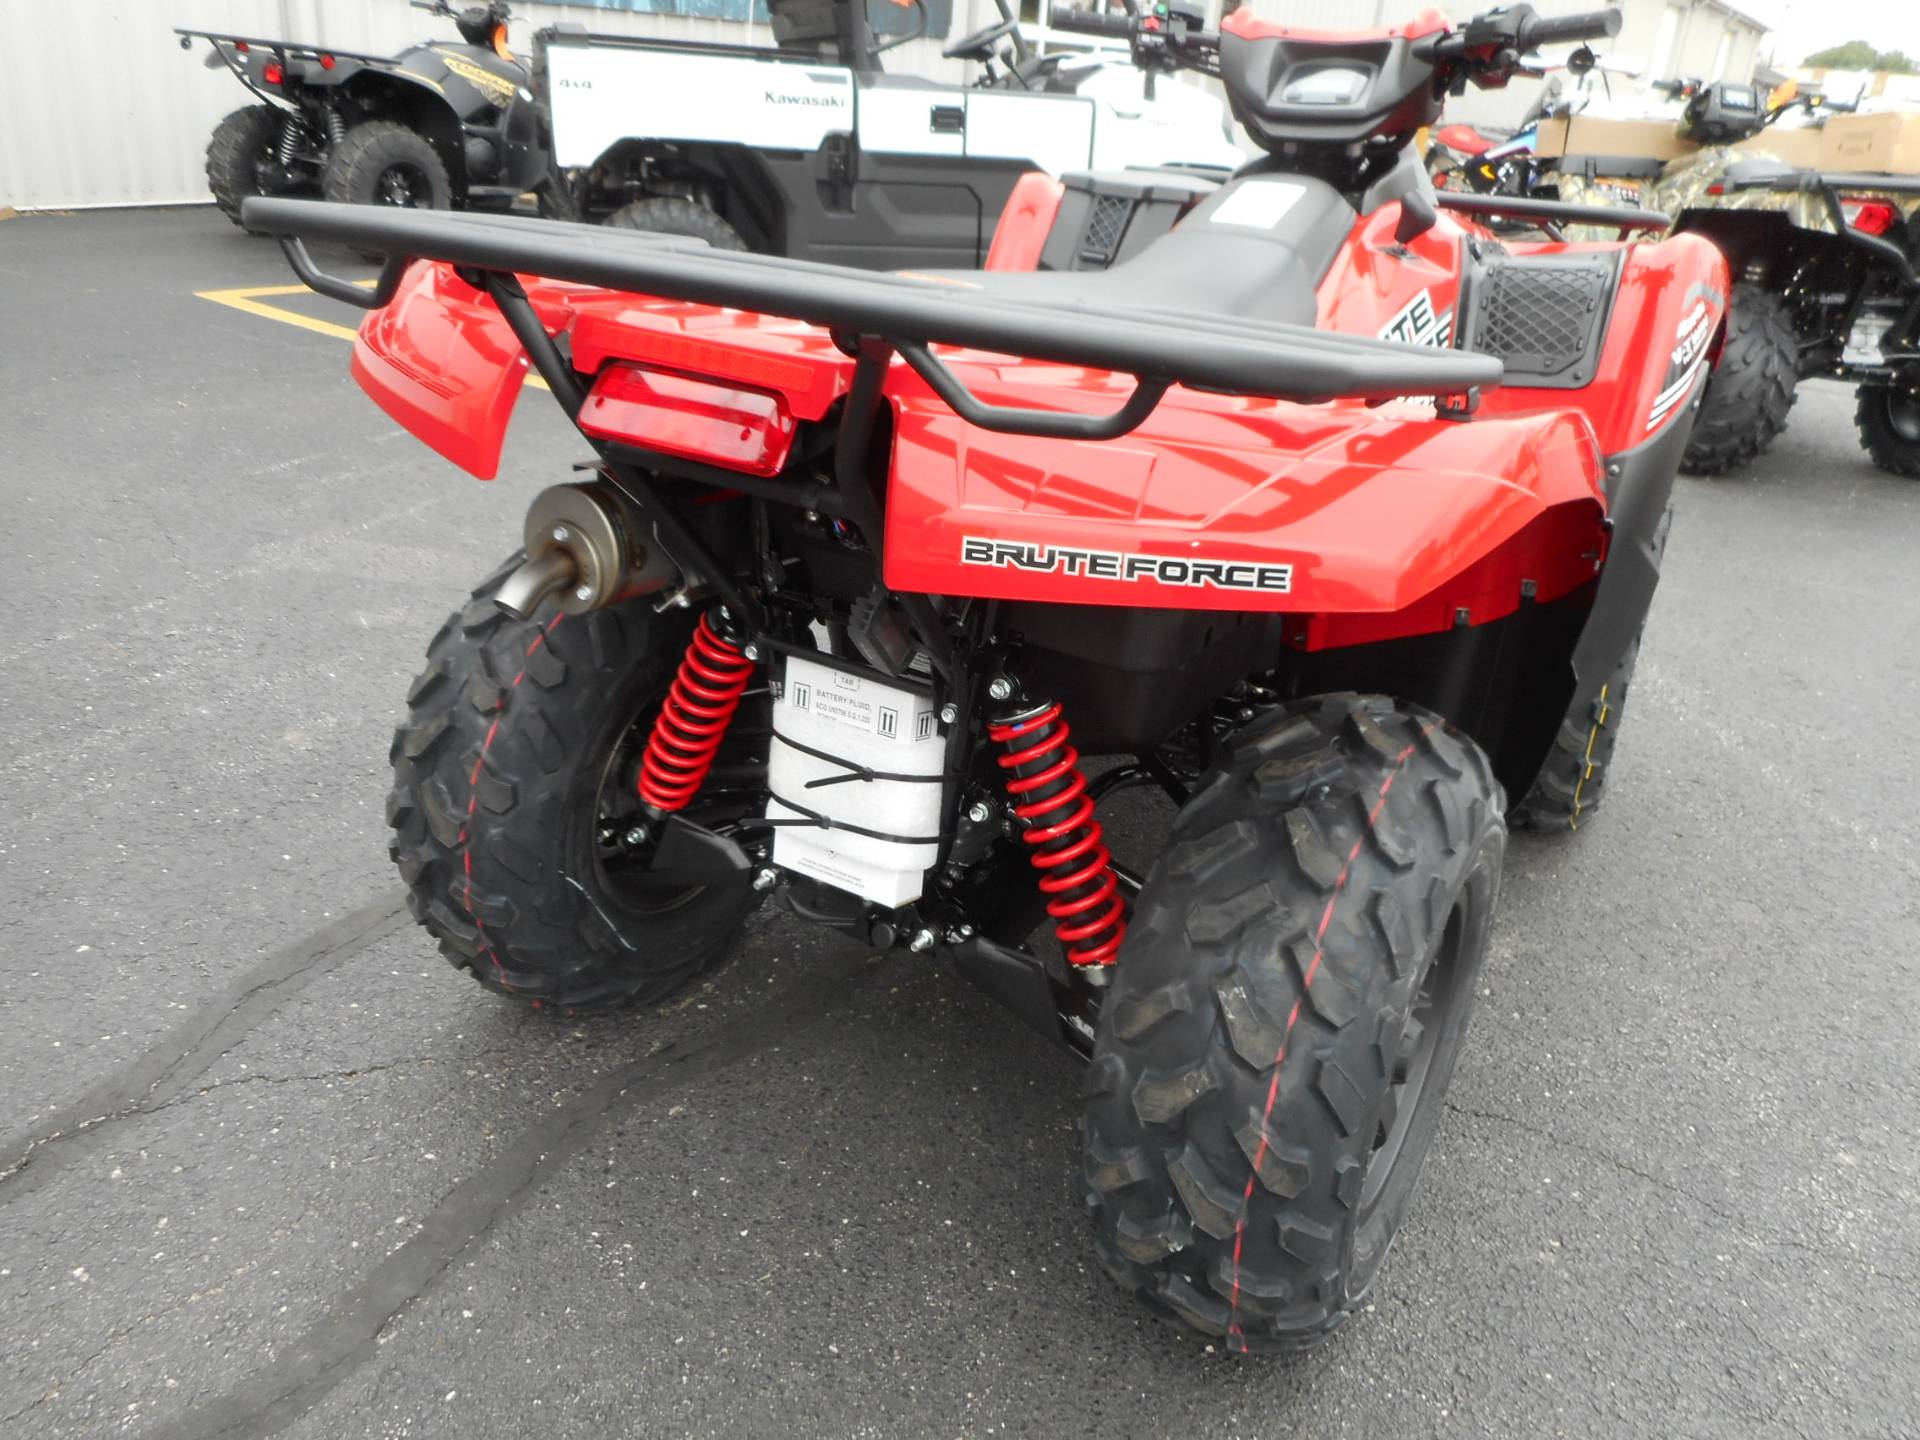 2020 Kawasaki Brute Force 750 4x4i in Belvidere, Illinois - Photo 4